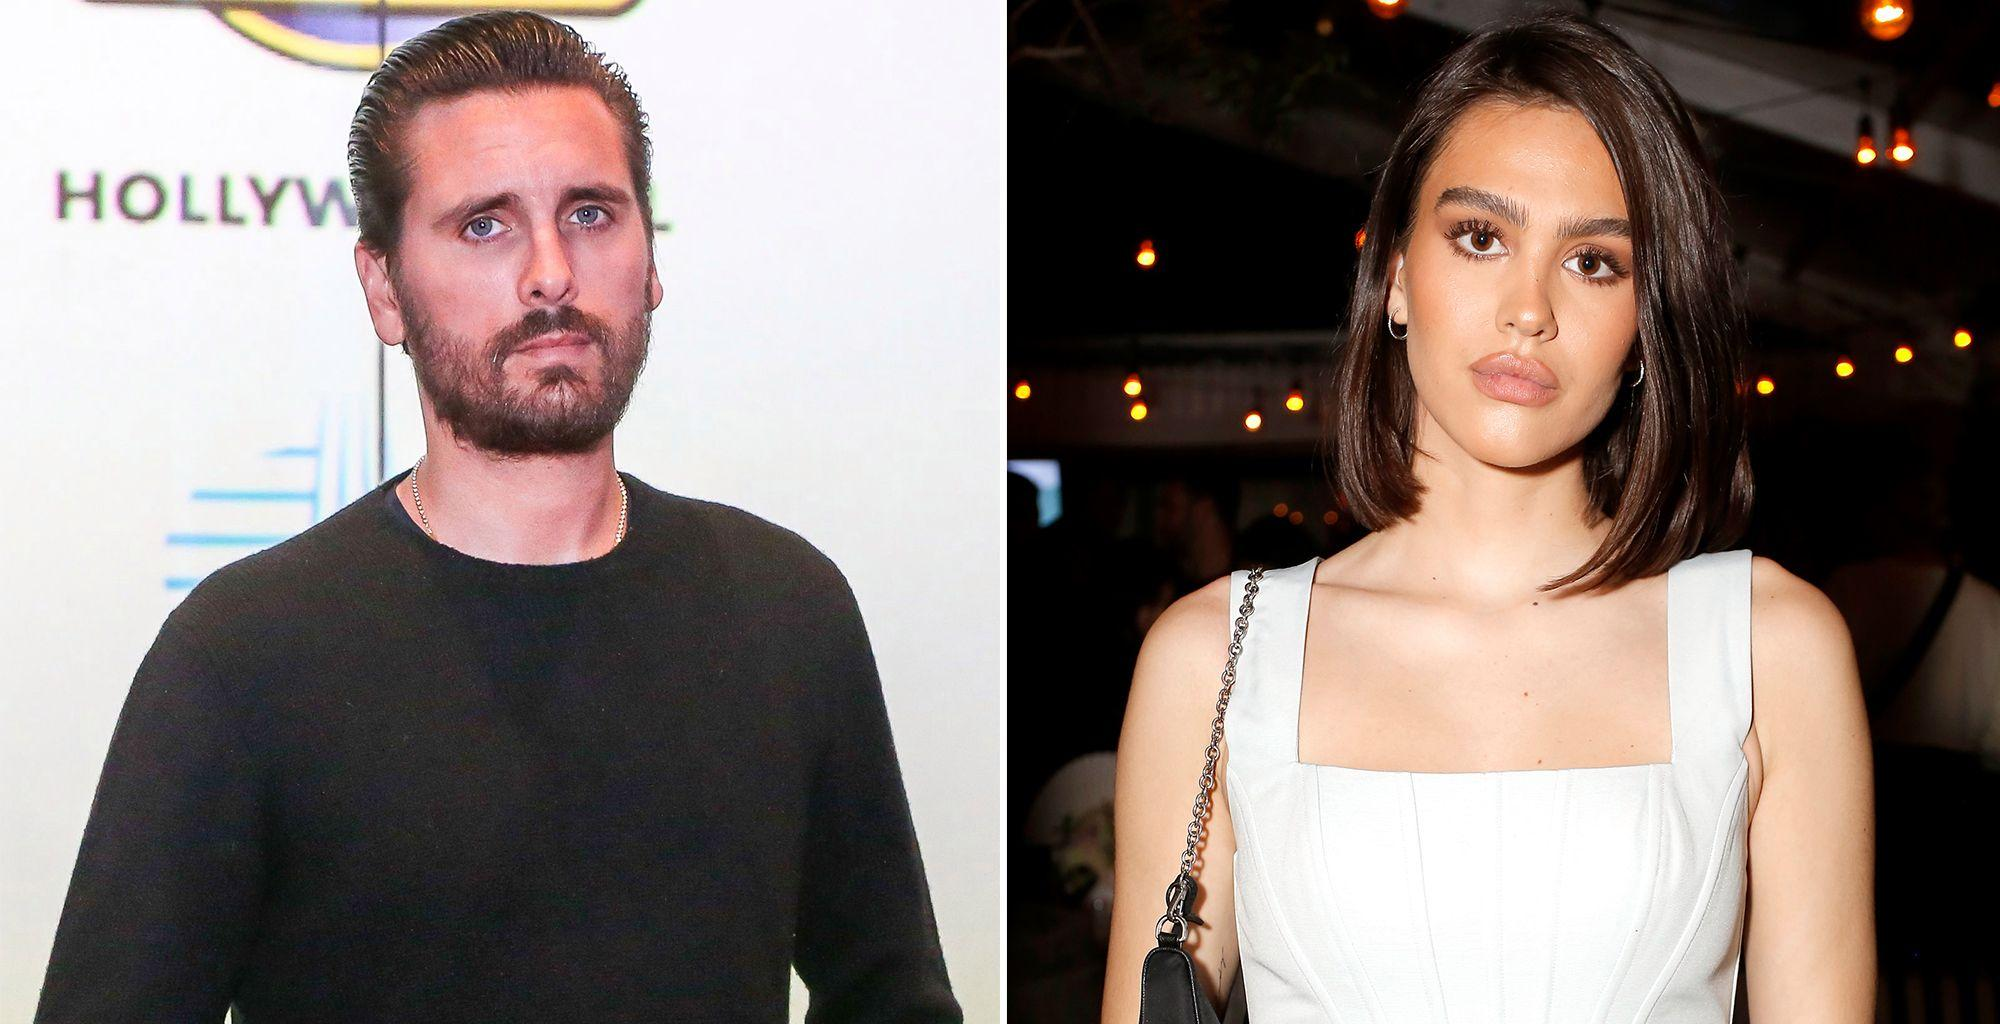 Scott Disick And Amelia Hamlin - Here's Why They Finally Made Their Romance Instagram Official!